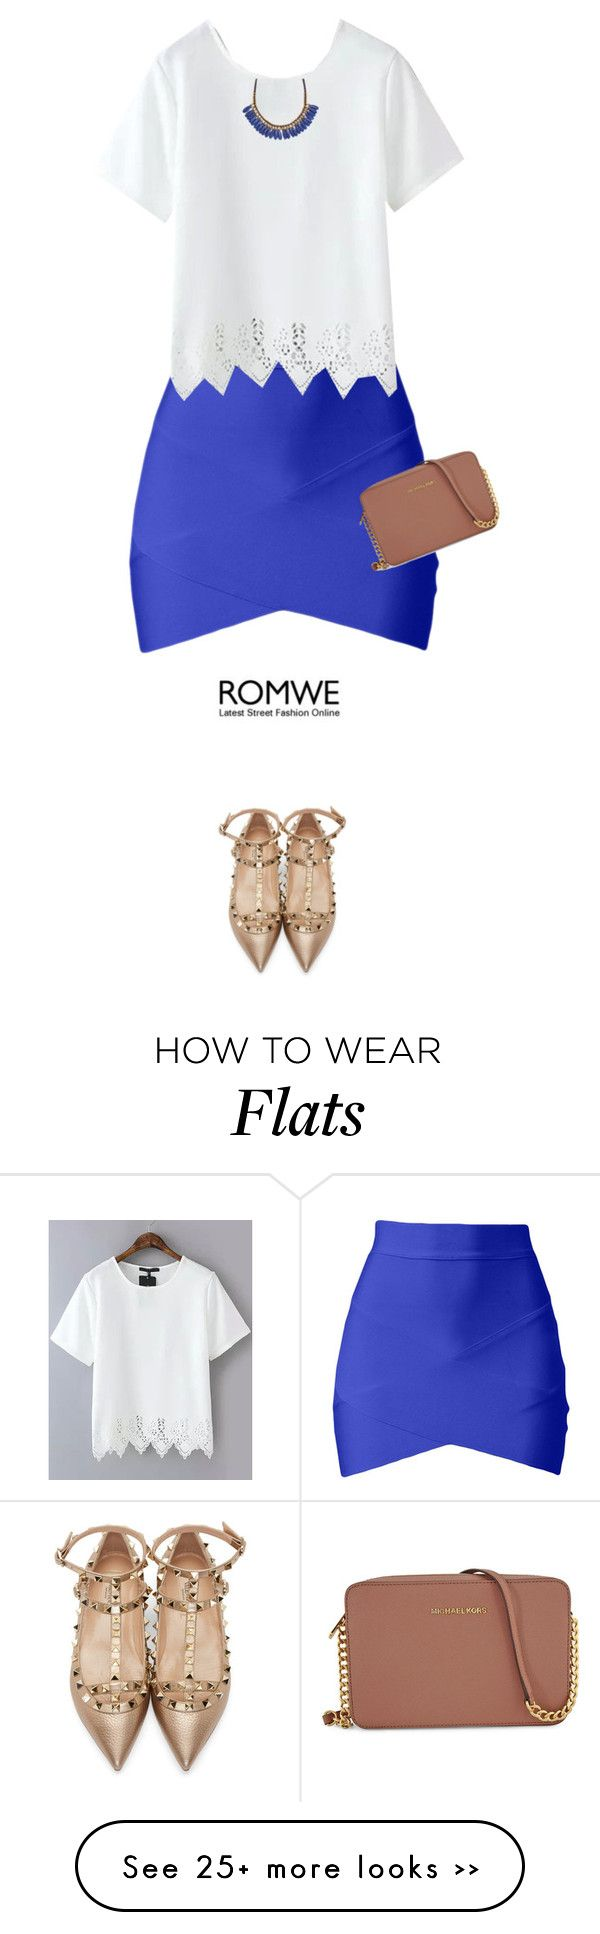 romwe by mako87 on Polyvore featuring Valentino, Michael Kors and Roni Kantor